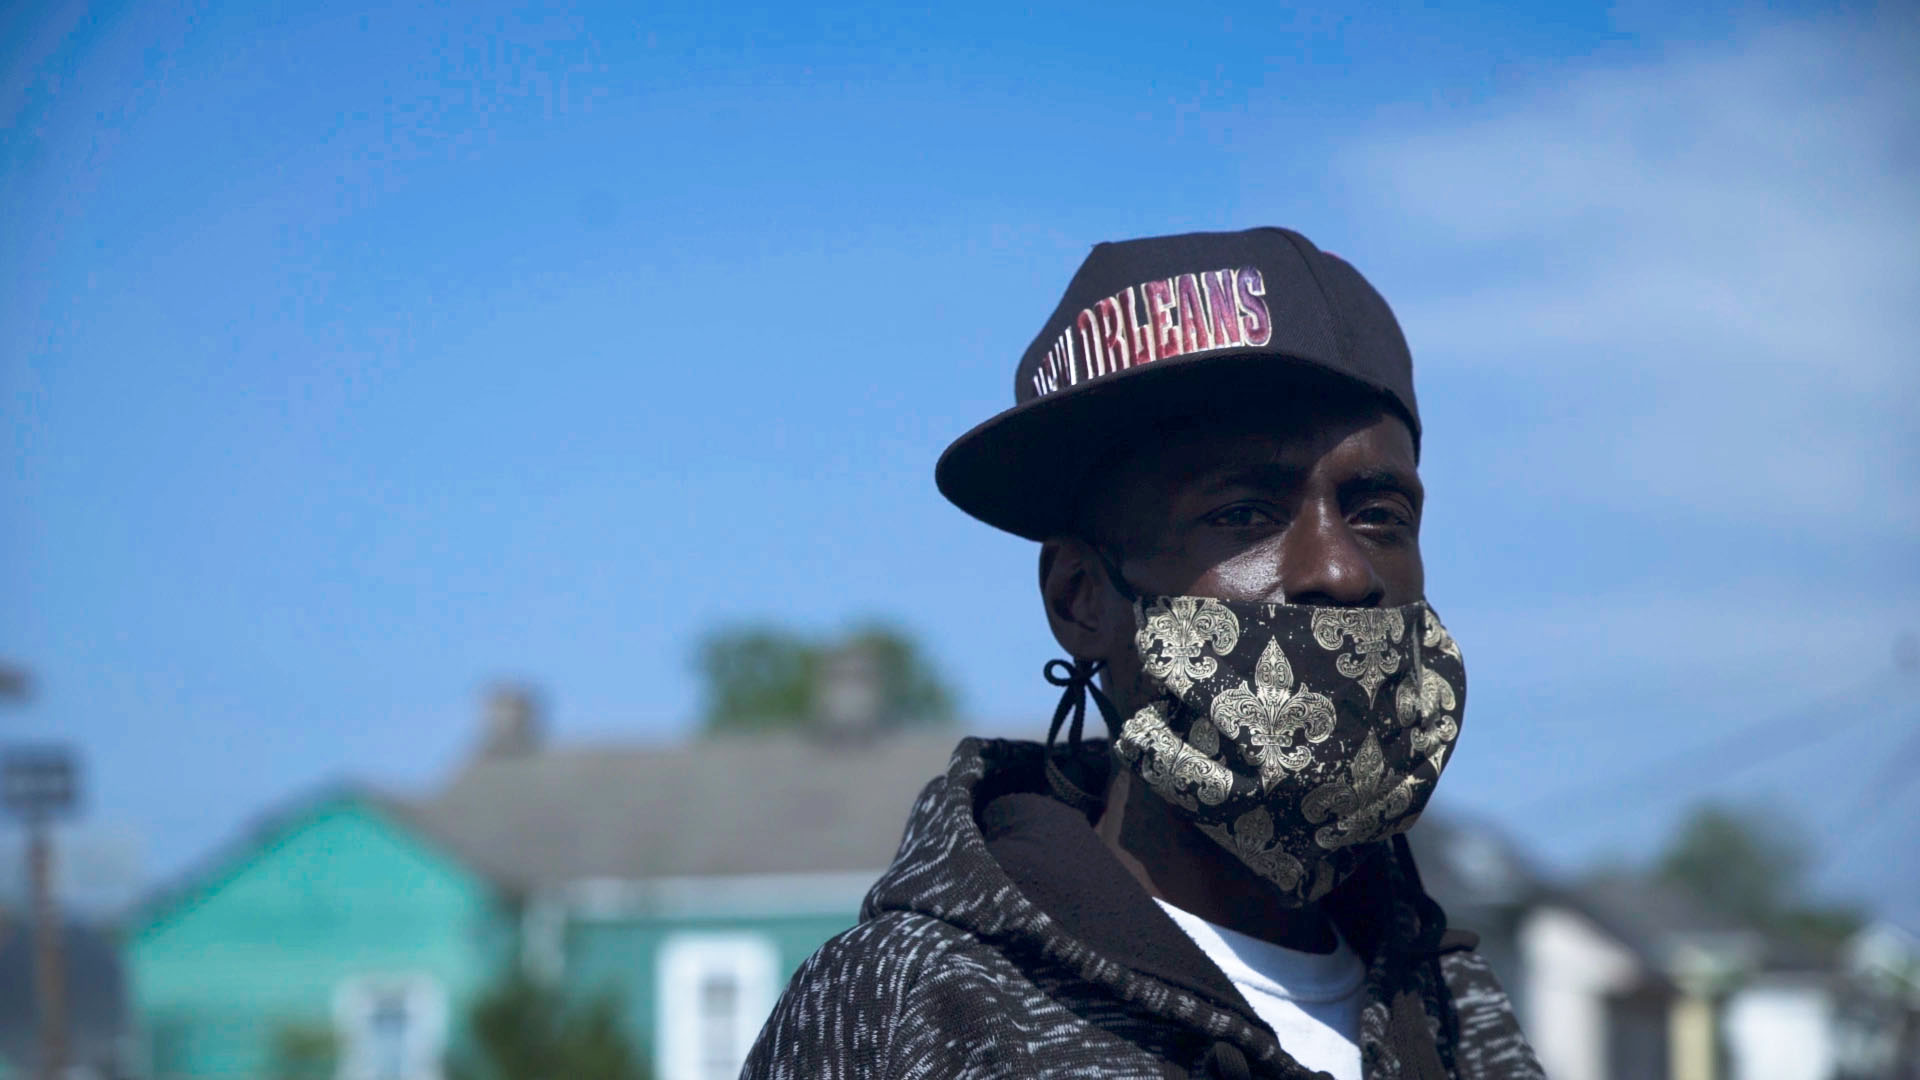 man wearing a hat and face mask looking into the camera with blue skies in the background